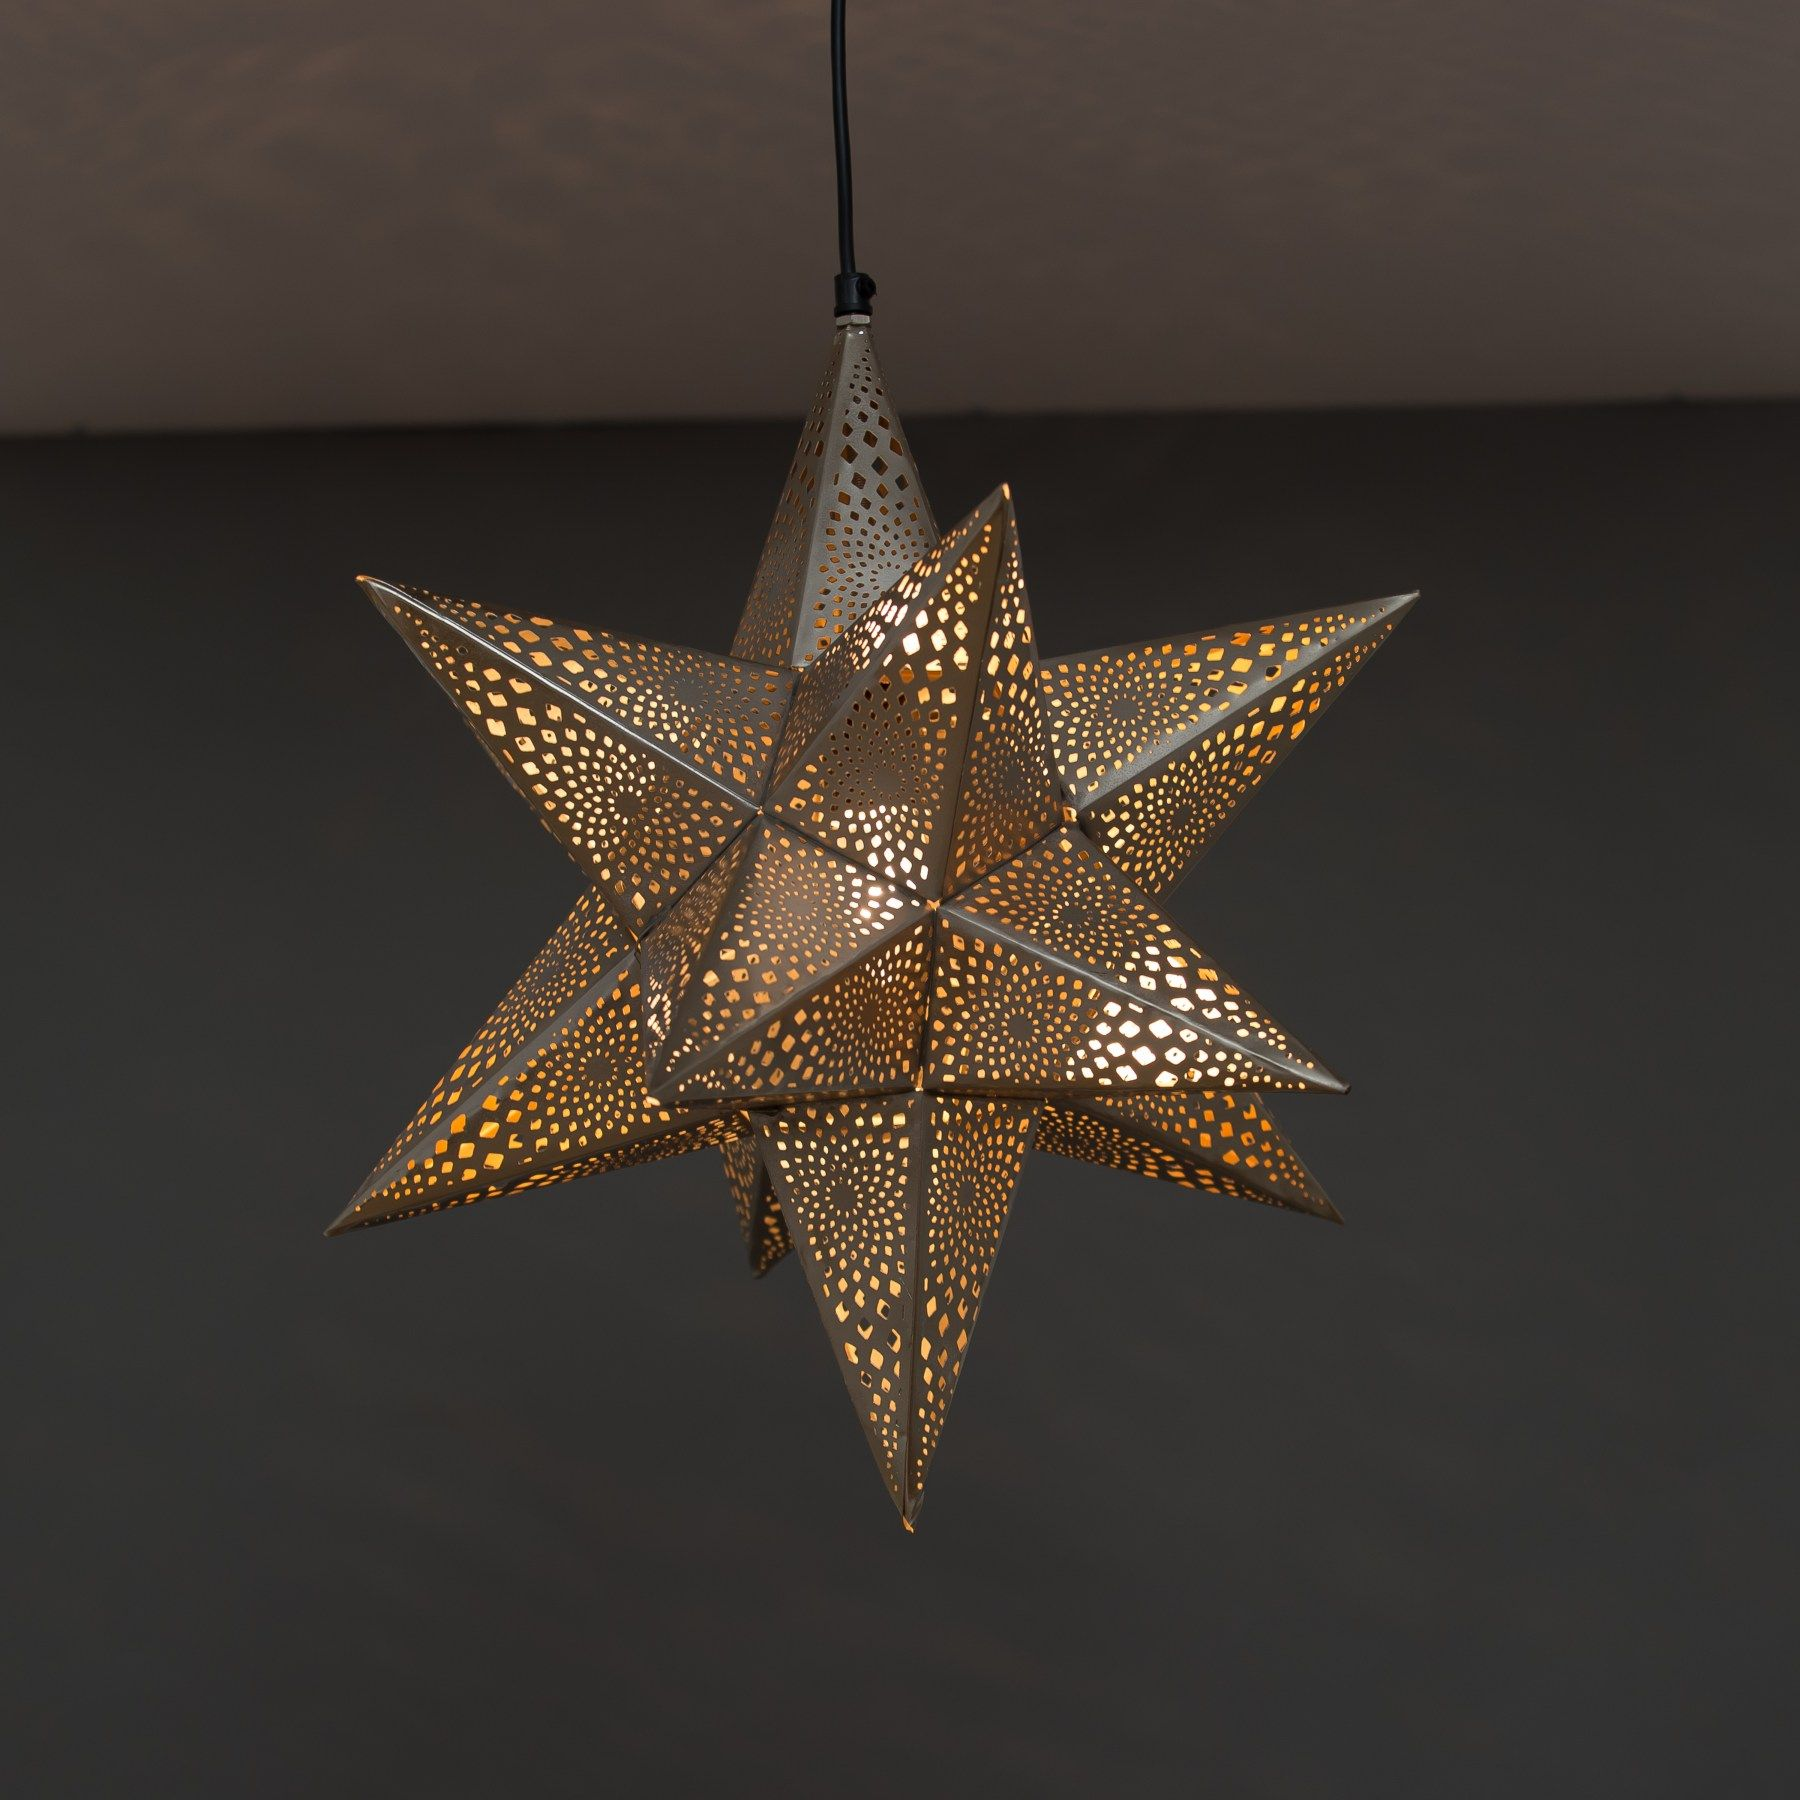 moroccan inspired lighting. Traditional Moroccan Inspired Design Star Shaped Ceiling Light. Hand-painted In A Robust Silver Lighting